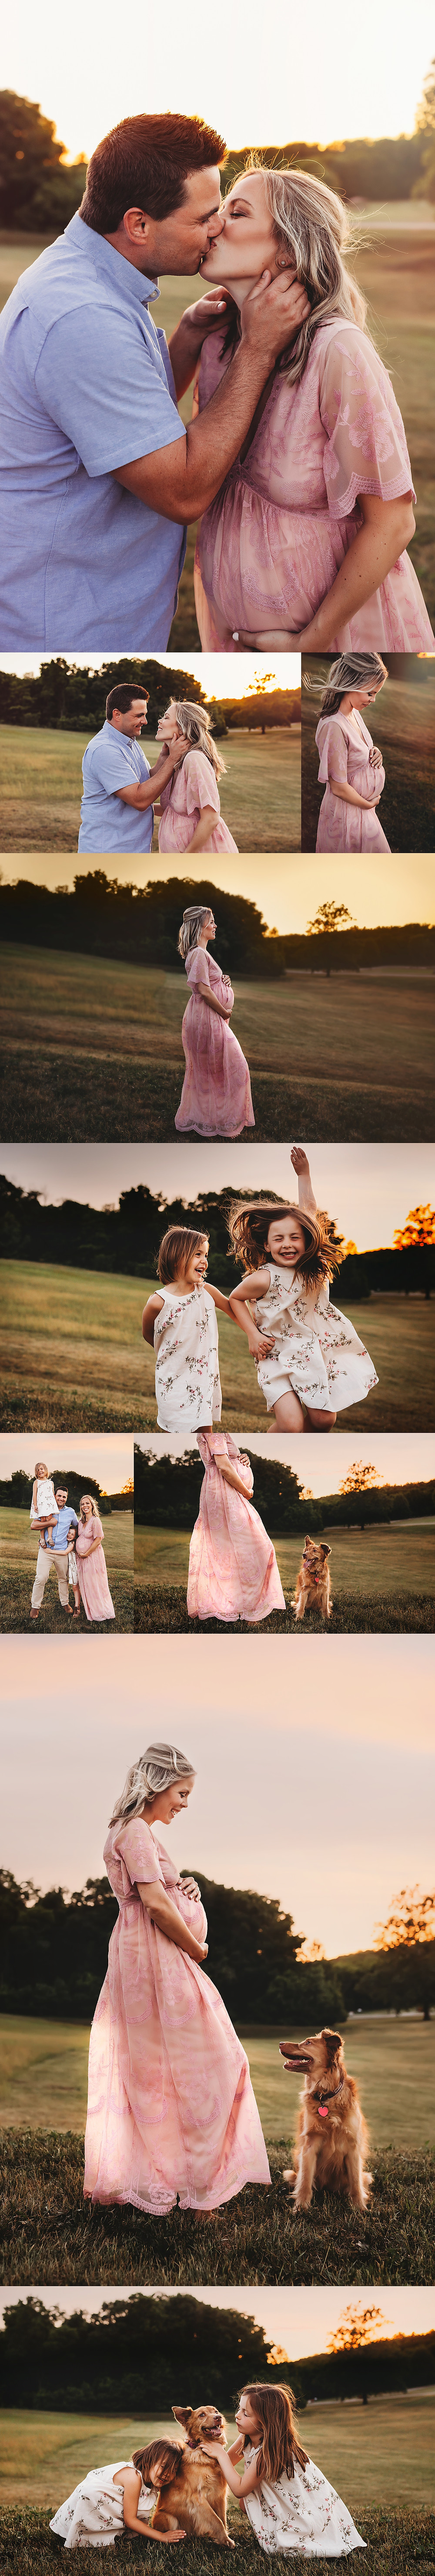 Indianapolis Family Photographer, Alex Morris Design, Lifestyle Photography